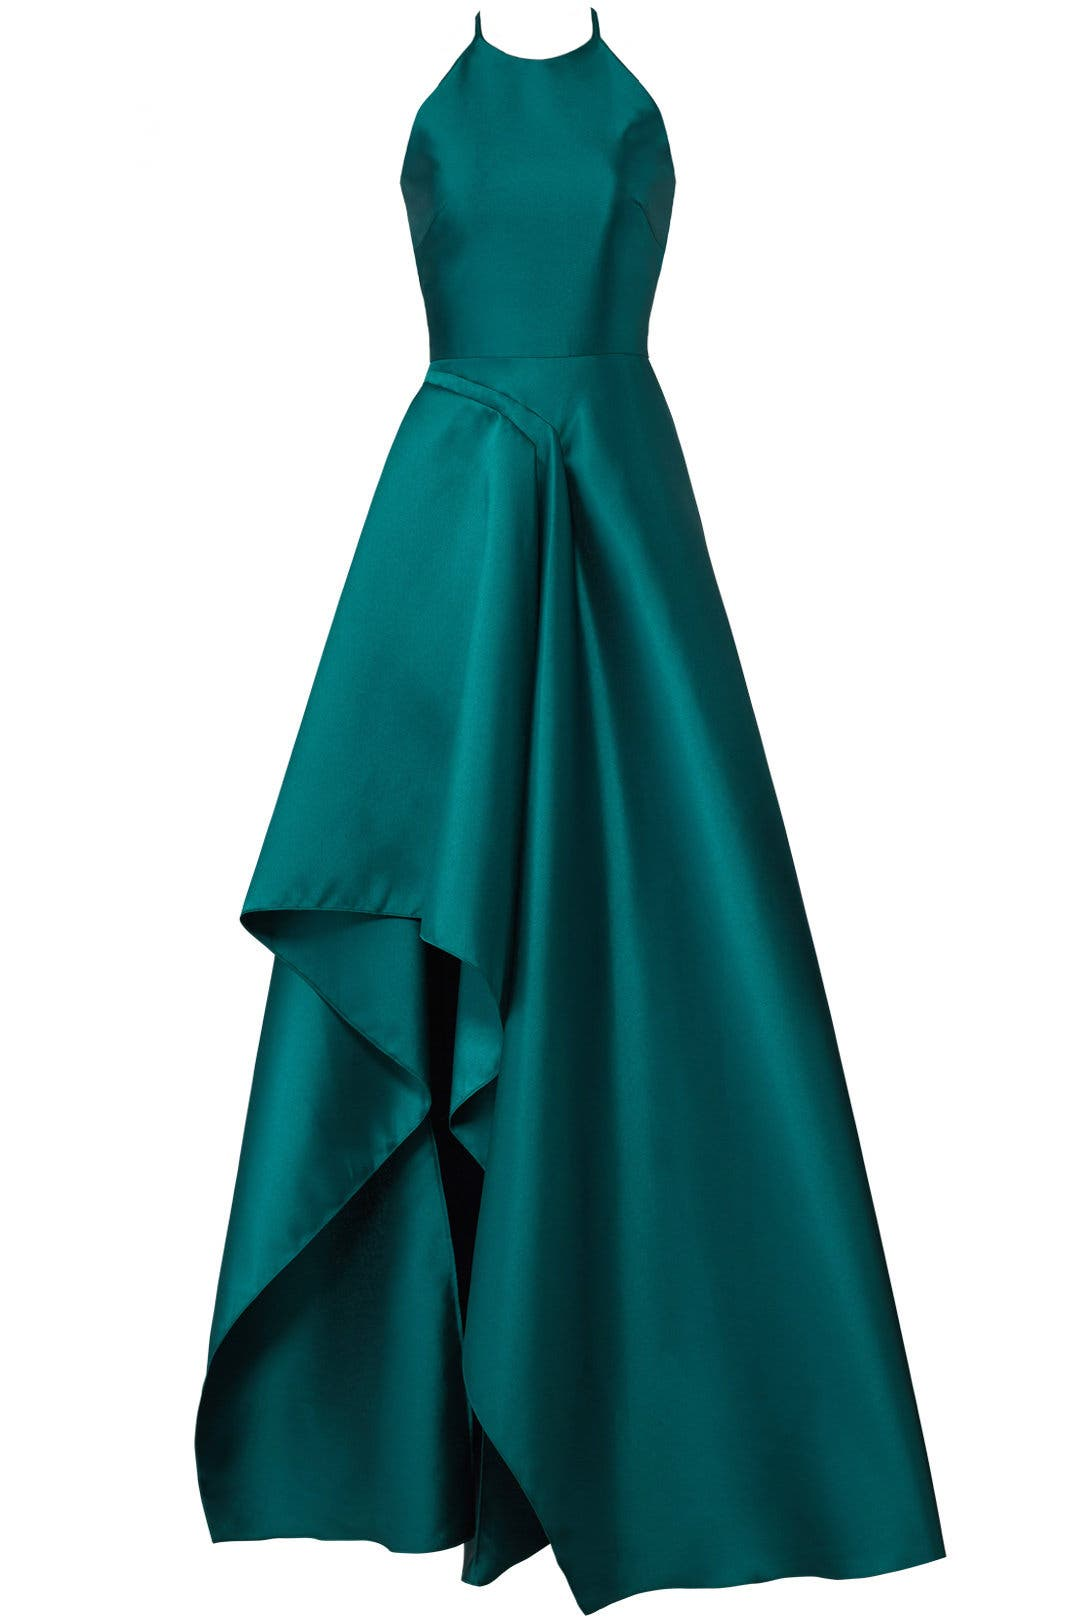 Dresses for Weddings, Formals, Black Tie & More